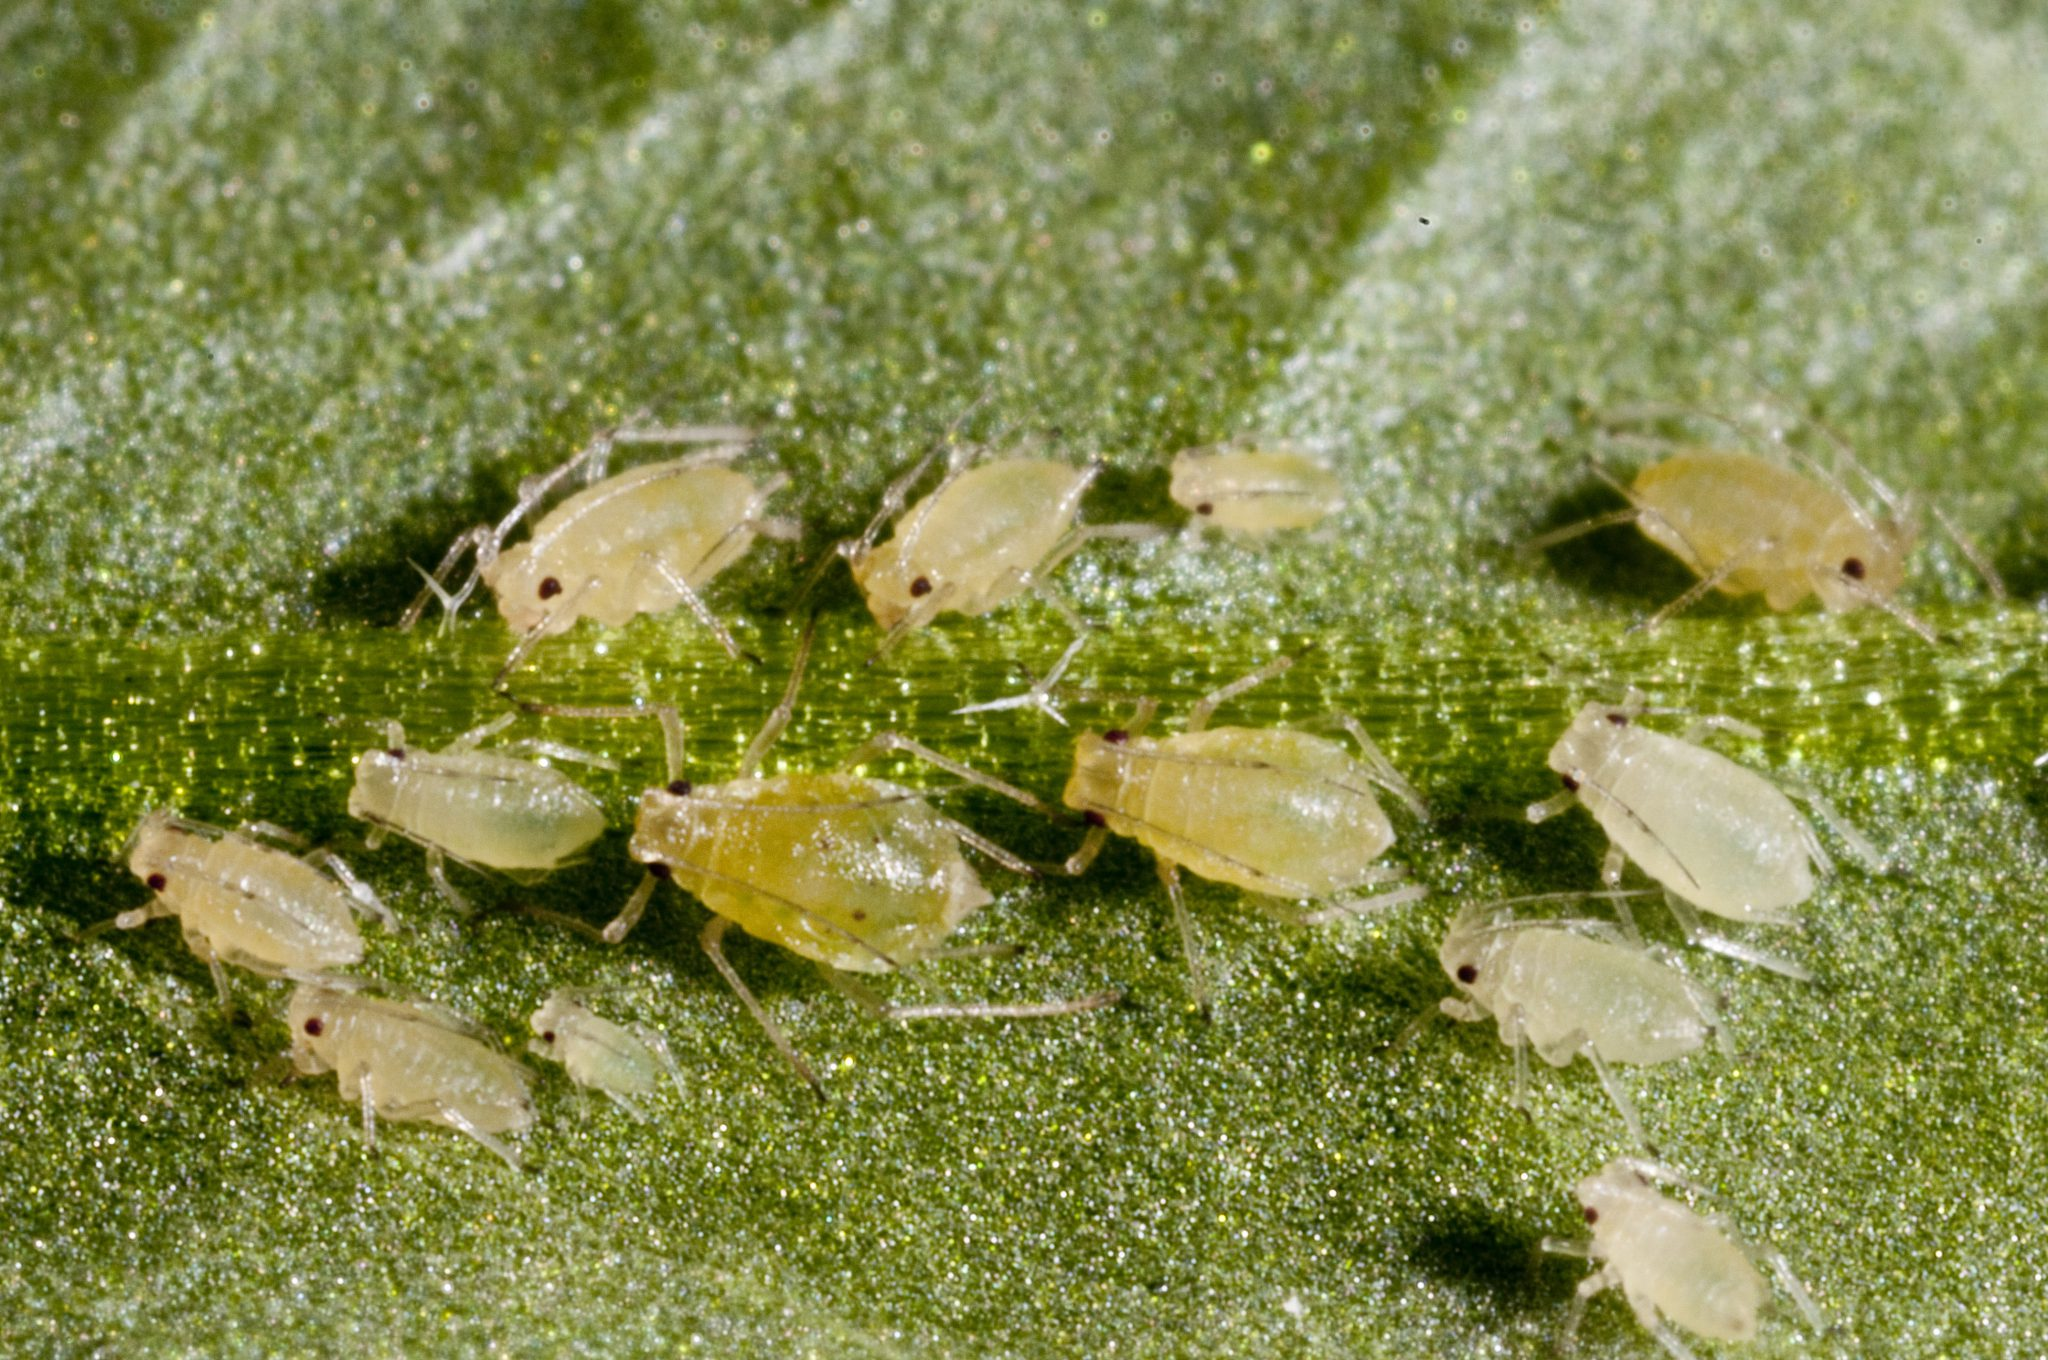 The green peach aphid (Myzus persicae) and her progeny feeding on a leaf